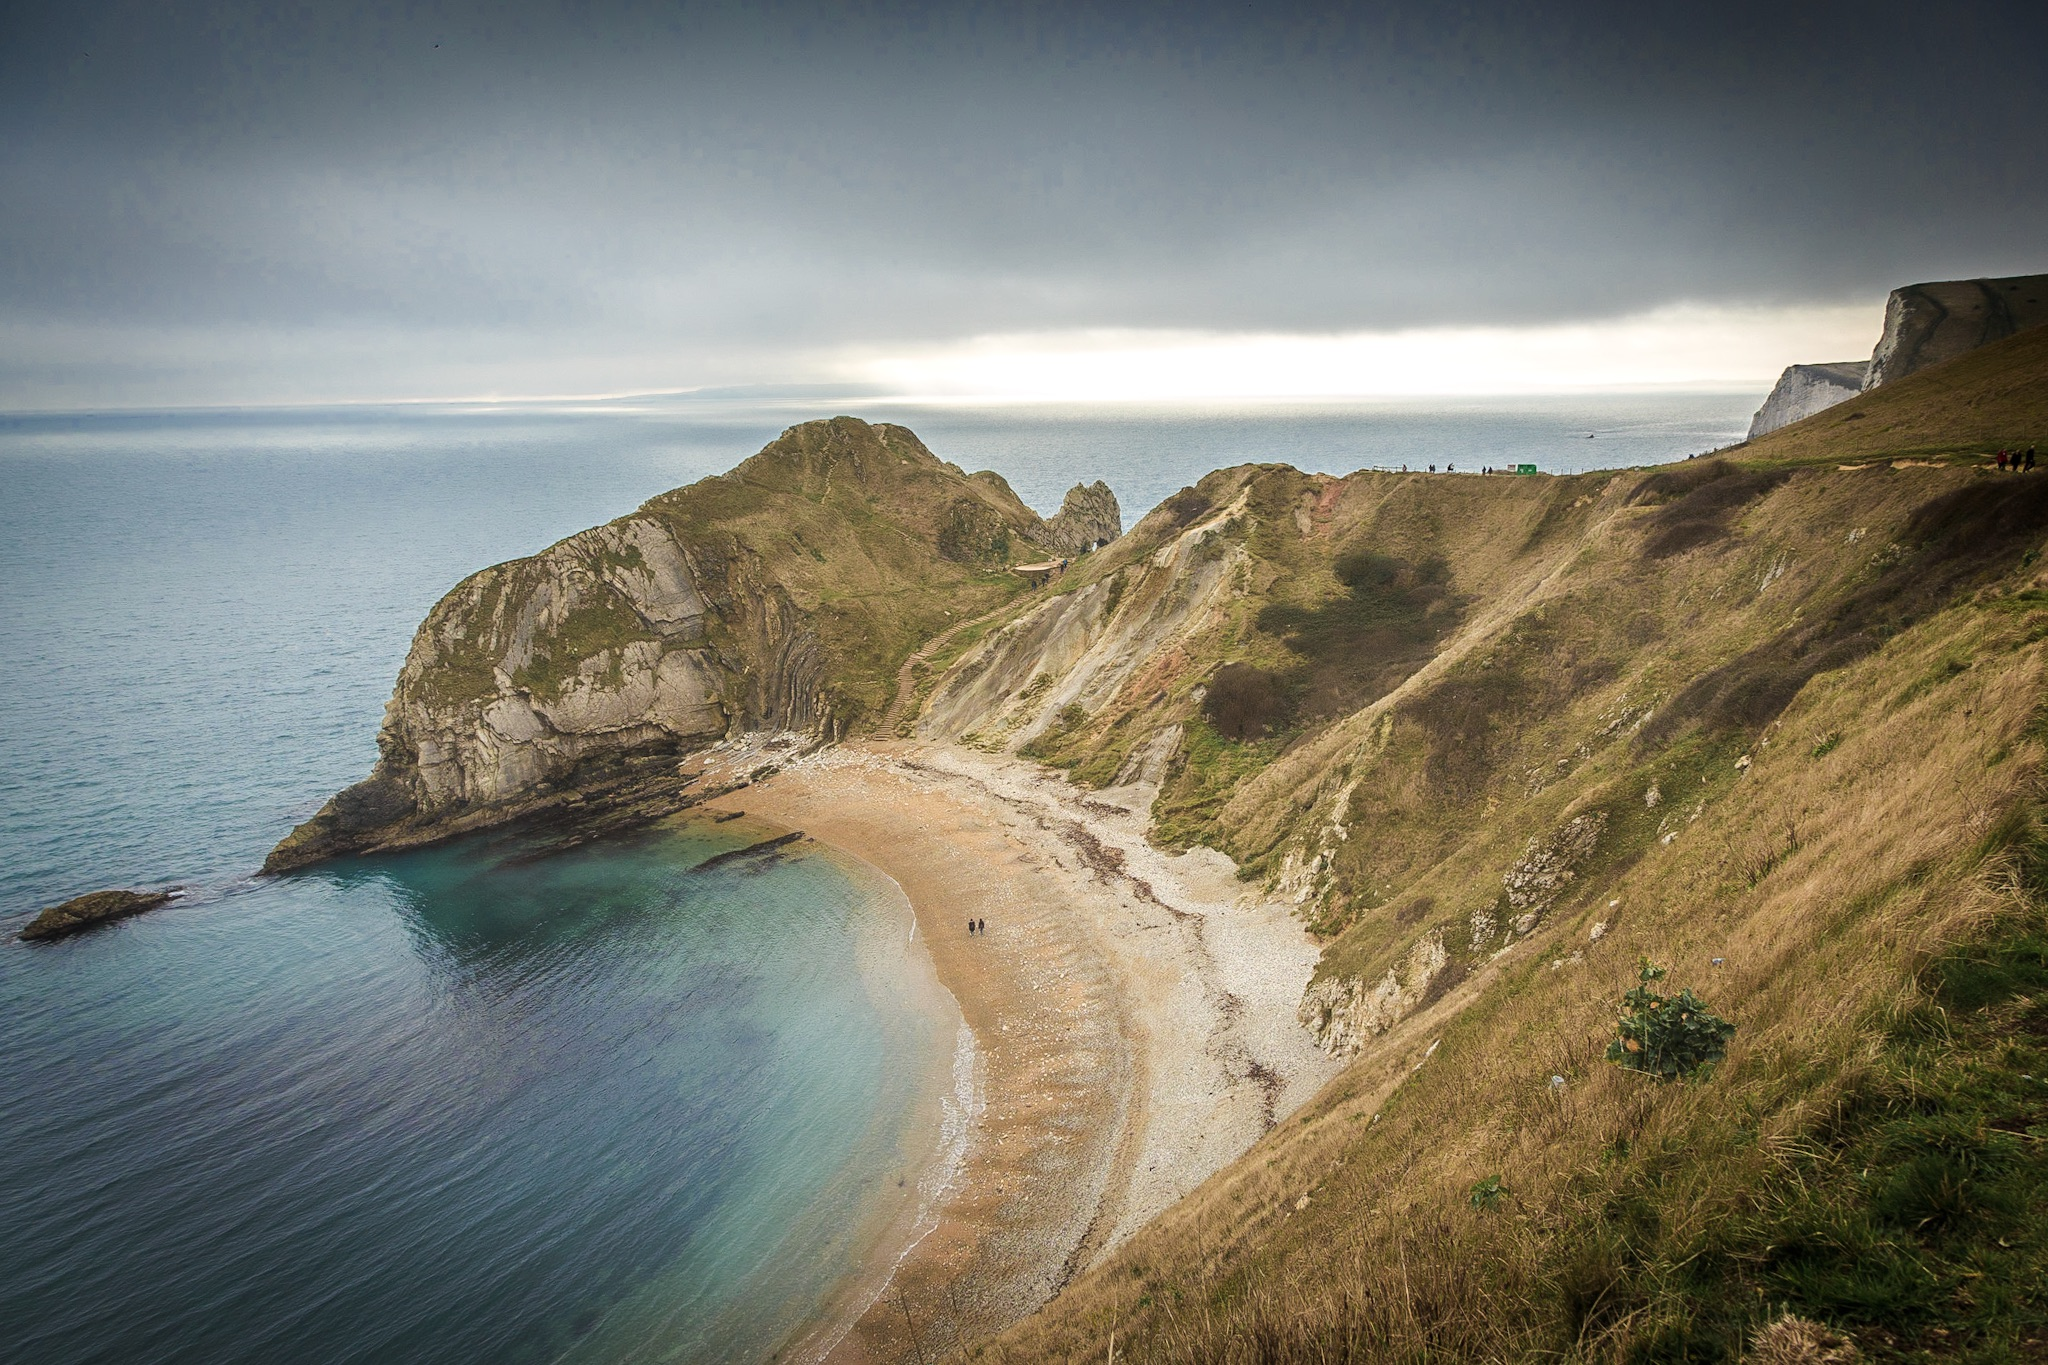 The view towards Durdle Door by Rick McEvoy Dorset Photographer